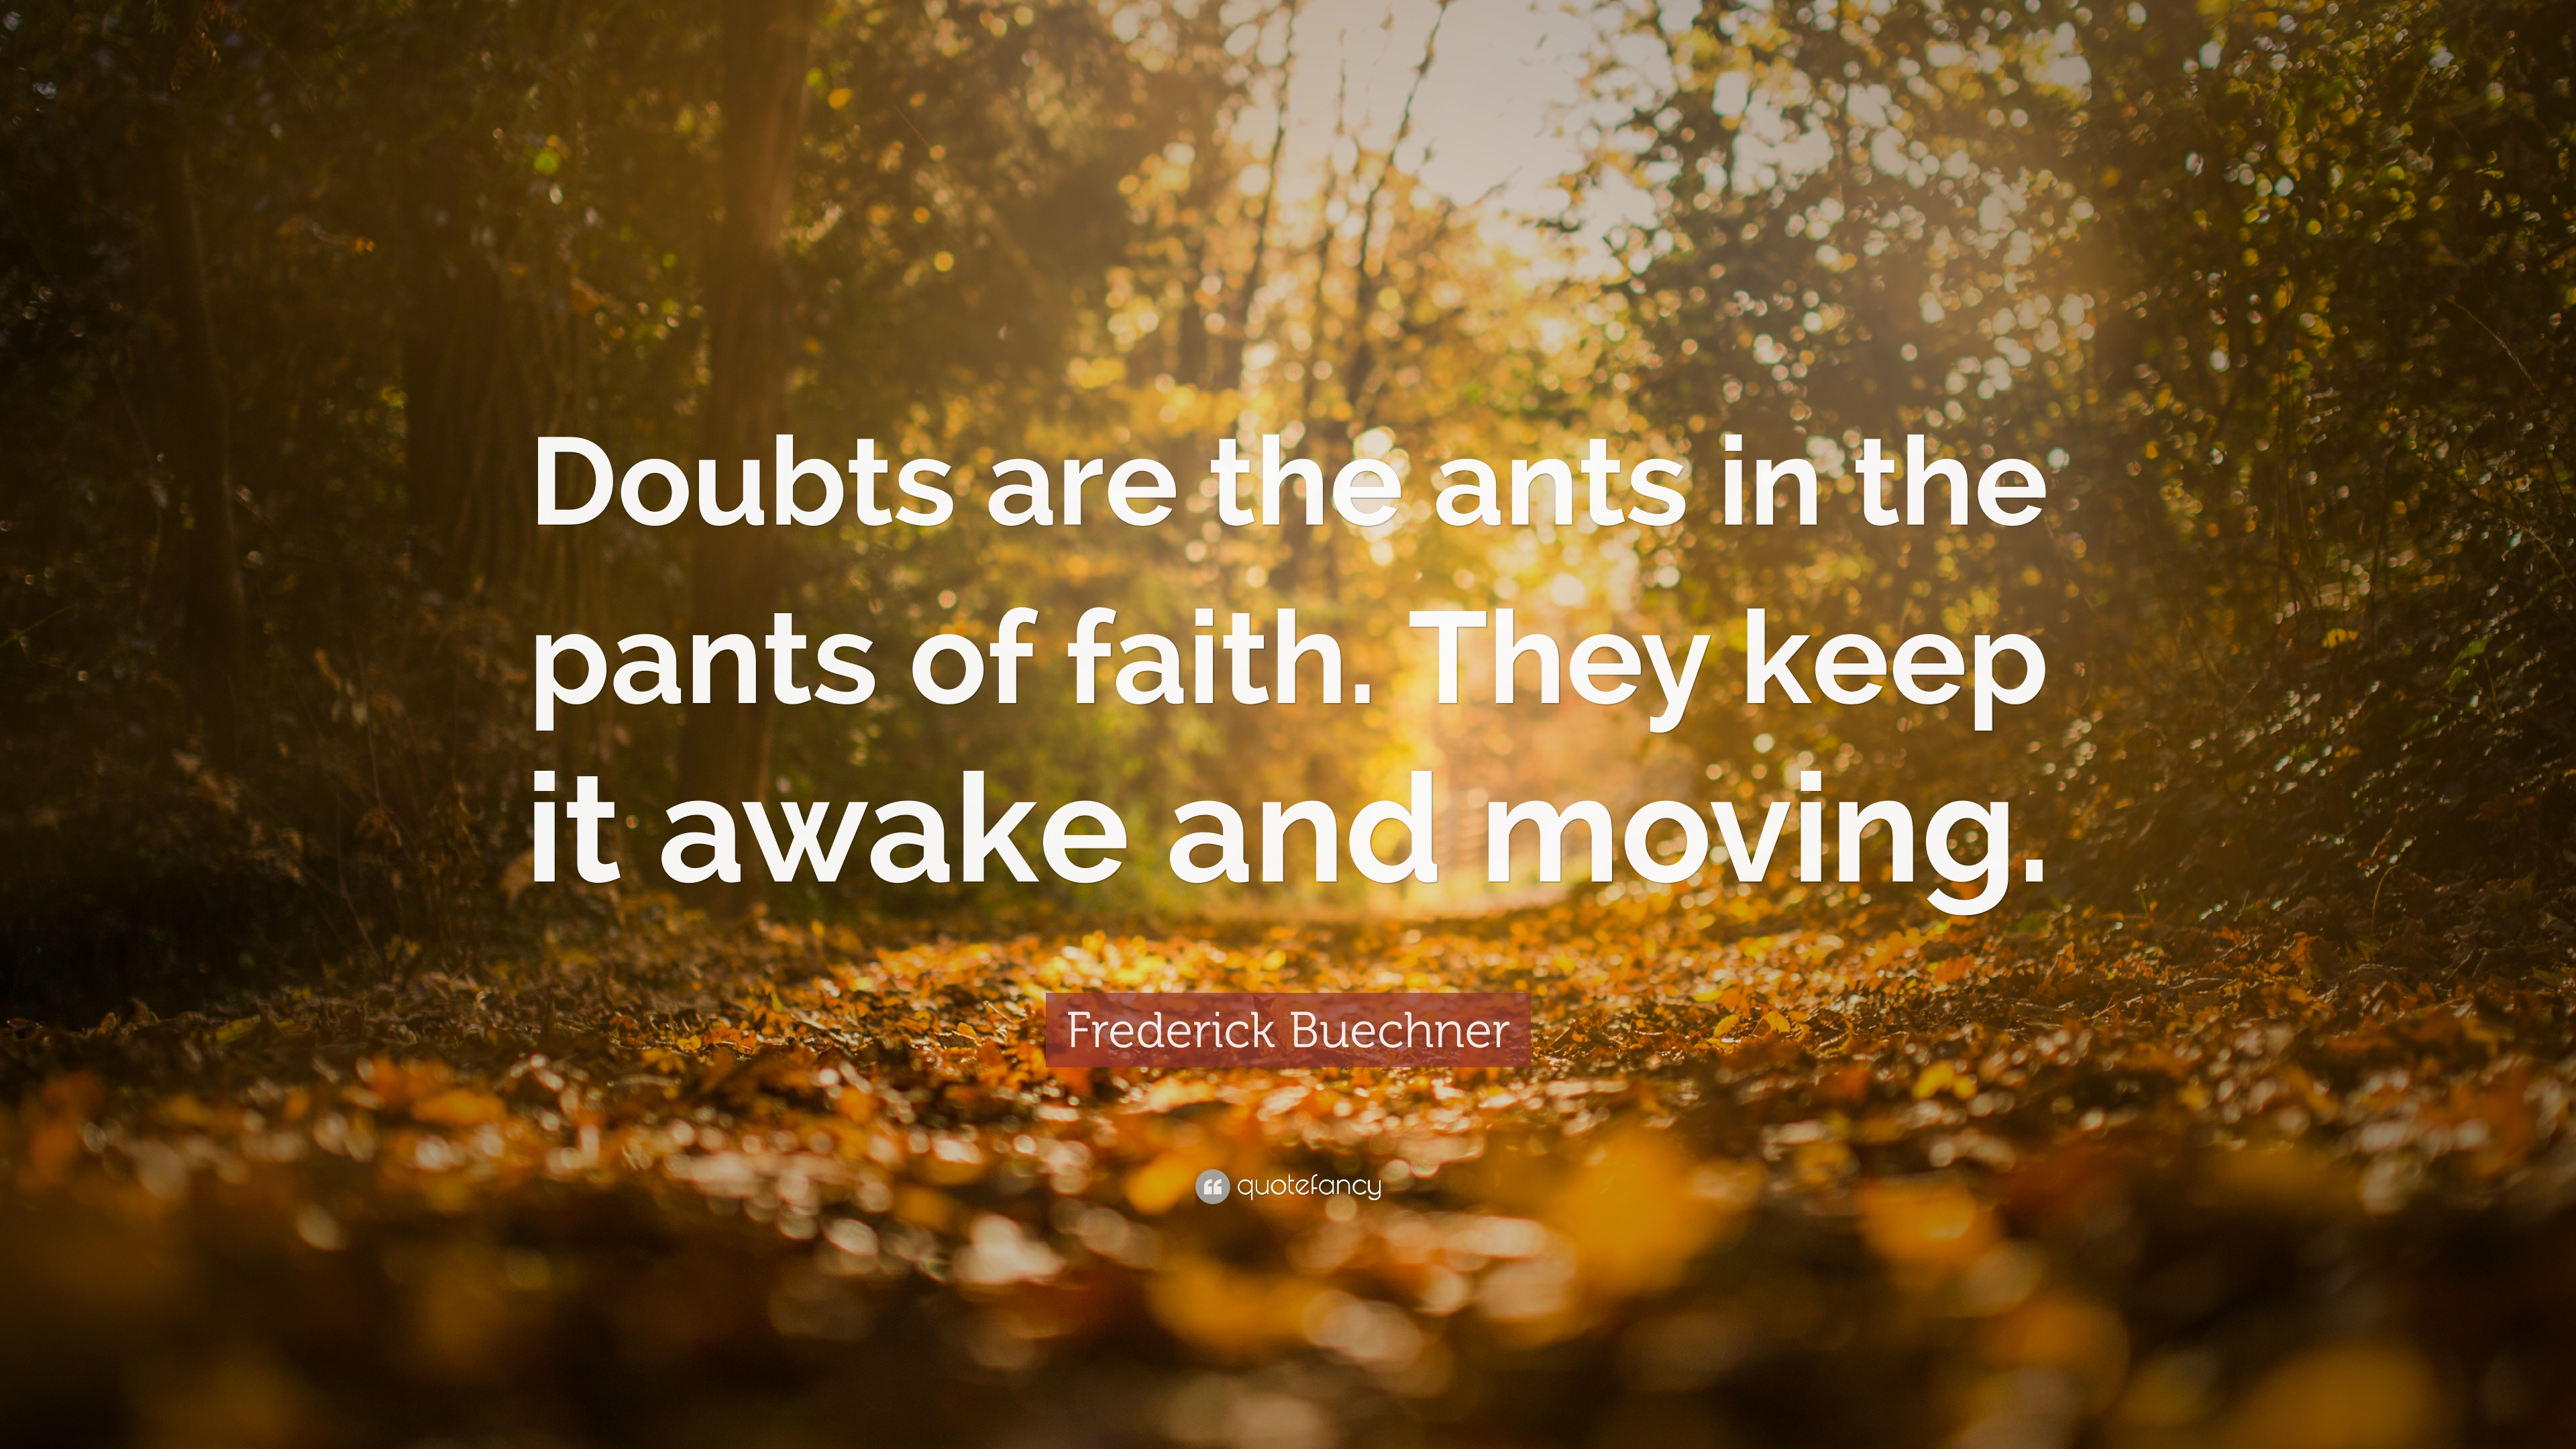 Image result for doubt ants in pants images